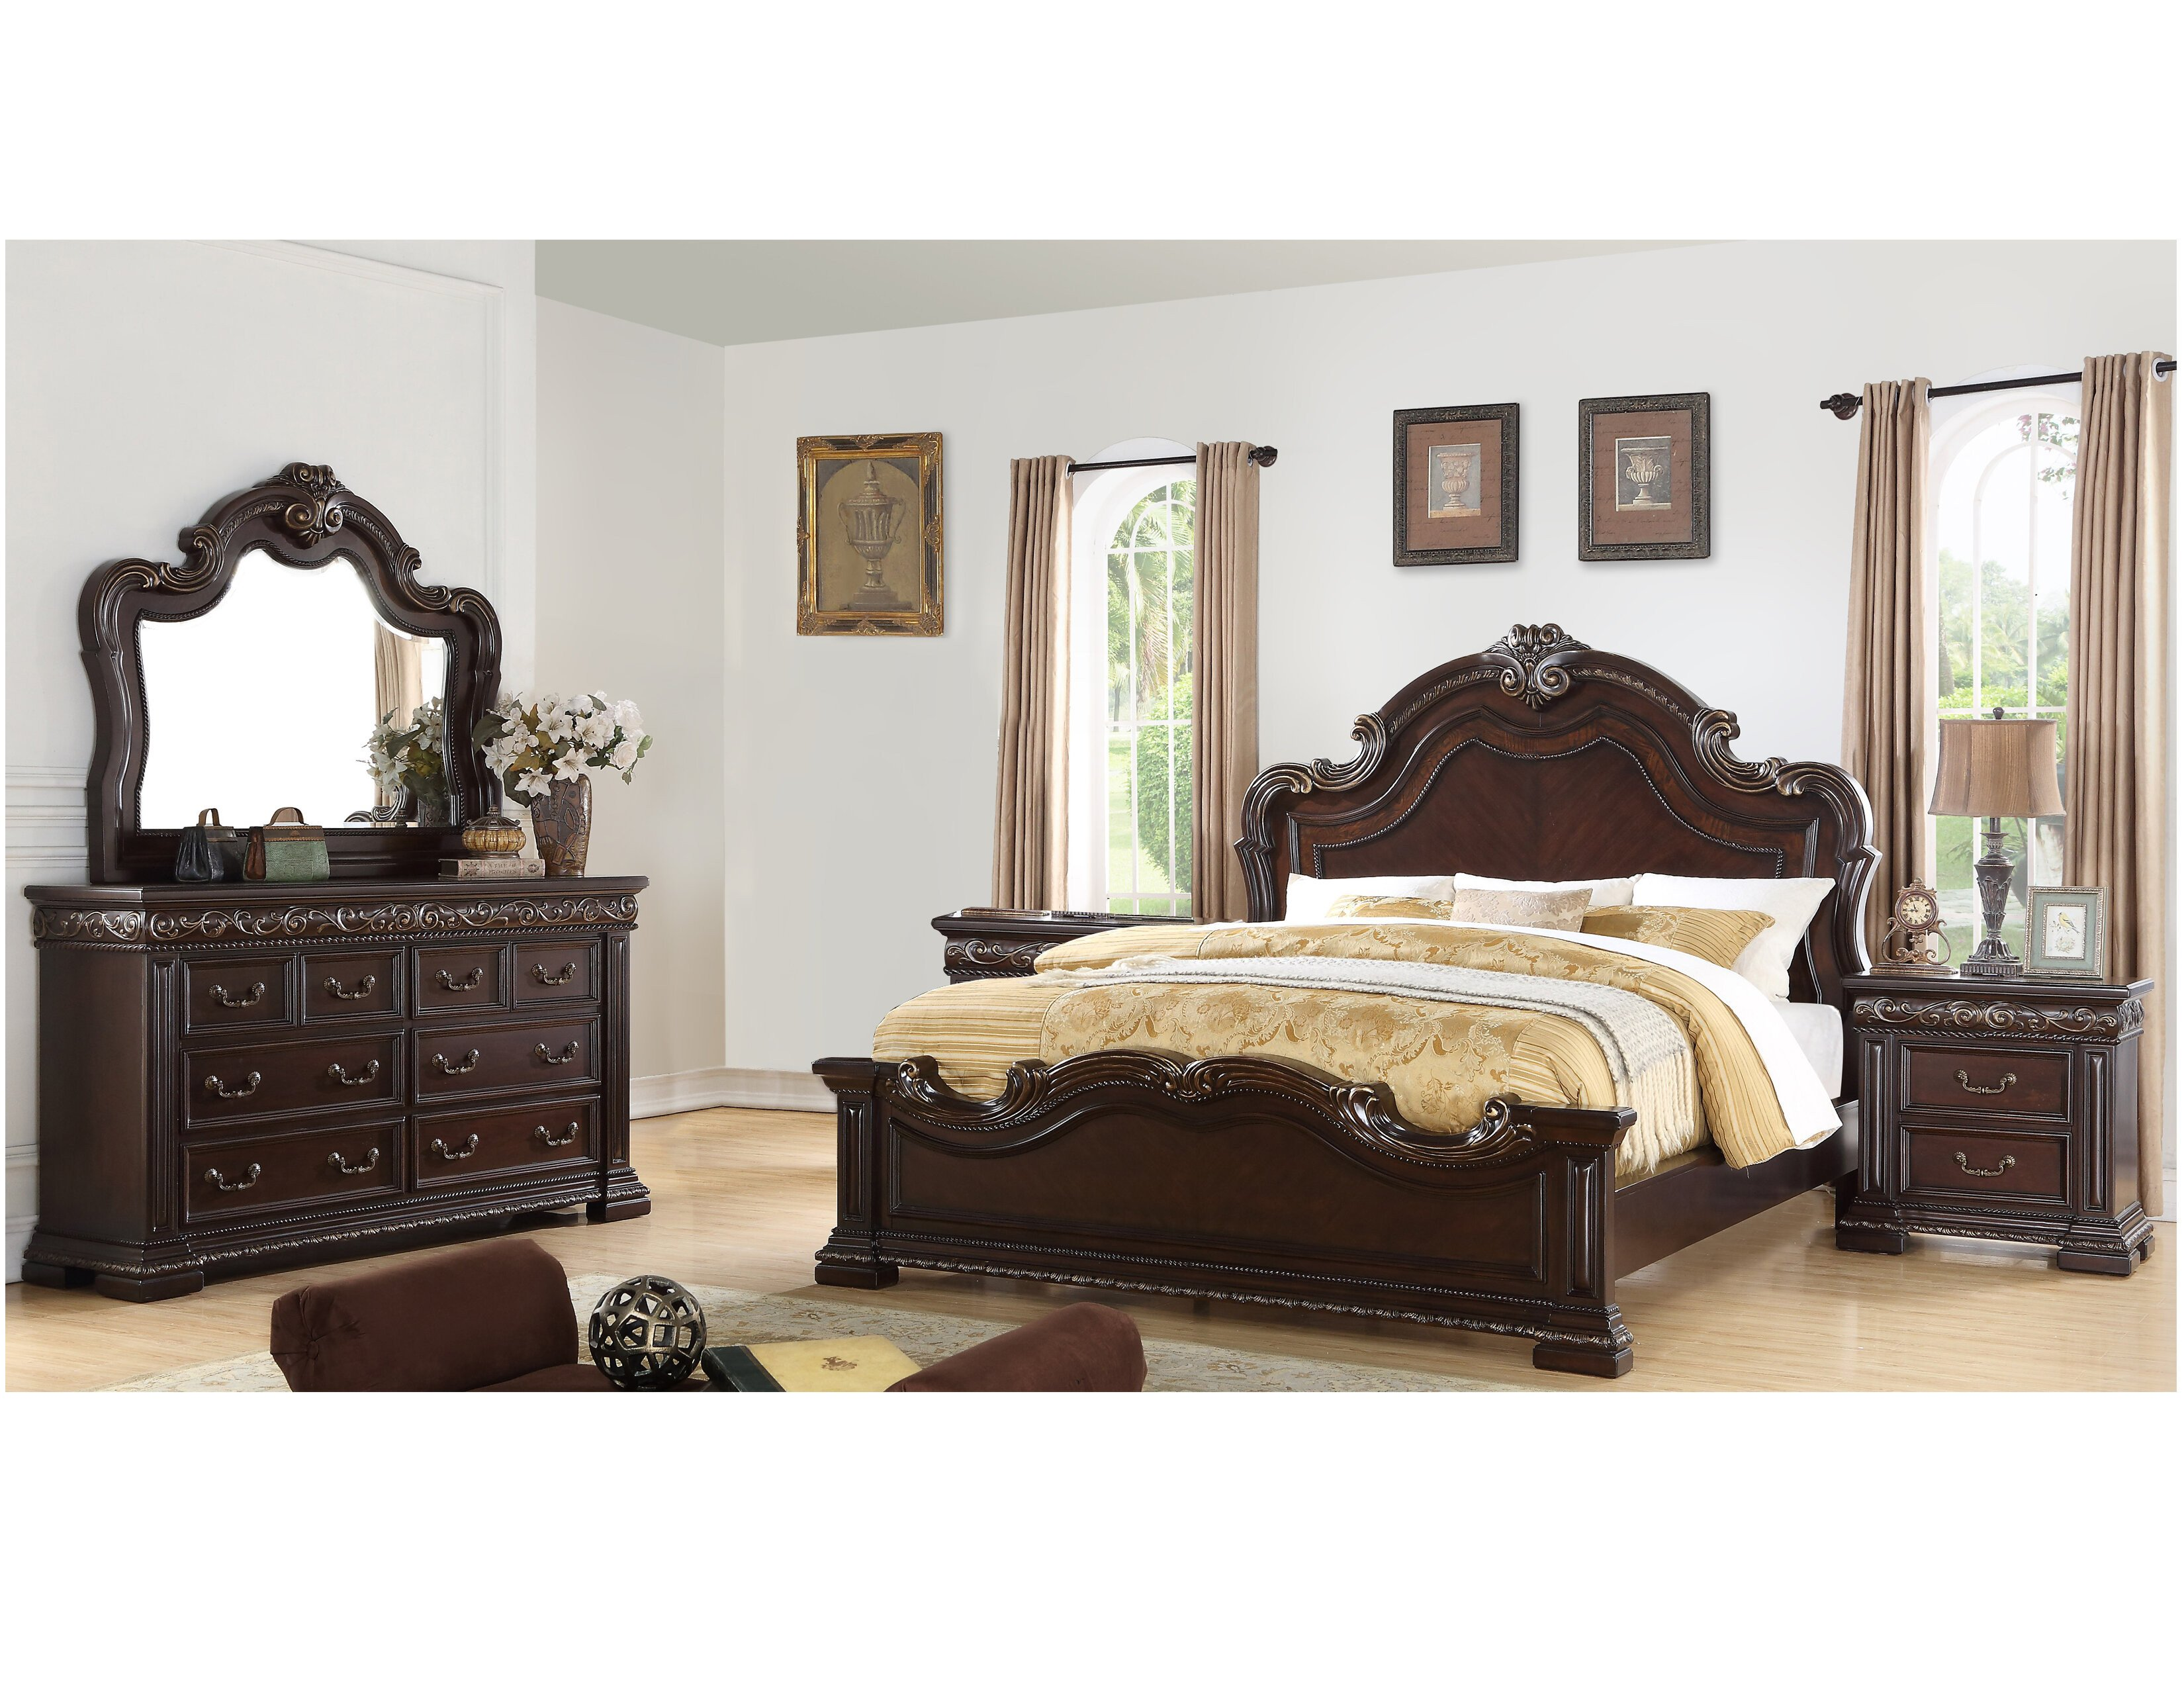 White Tufted Bedroom Set Awesome Bannruod Standard solid Wood 5 Piece Bedroom Set